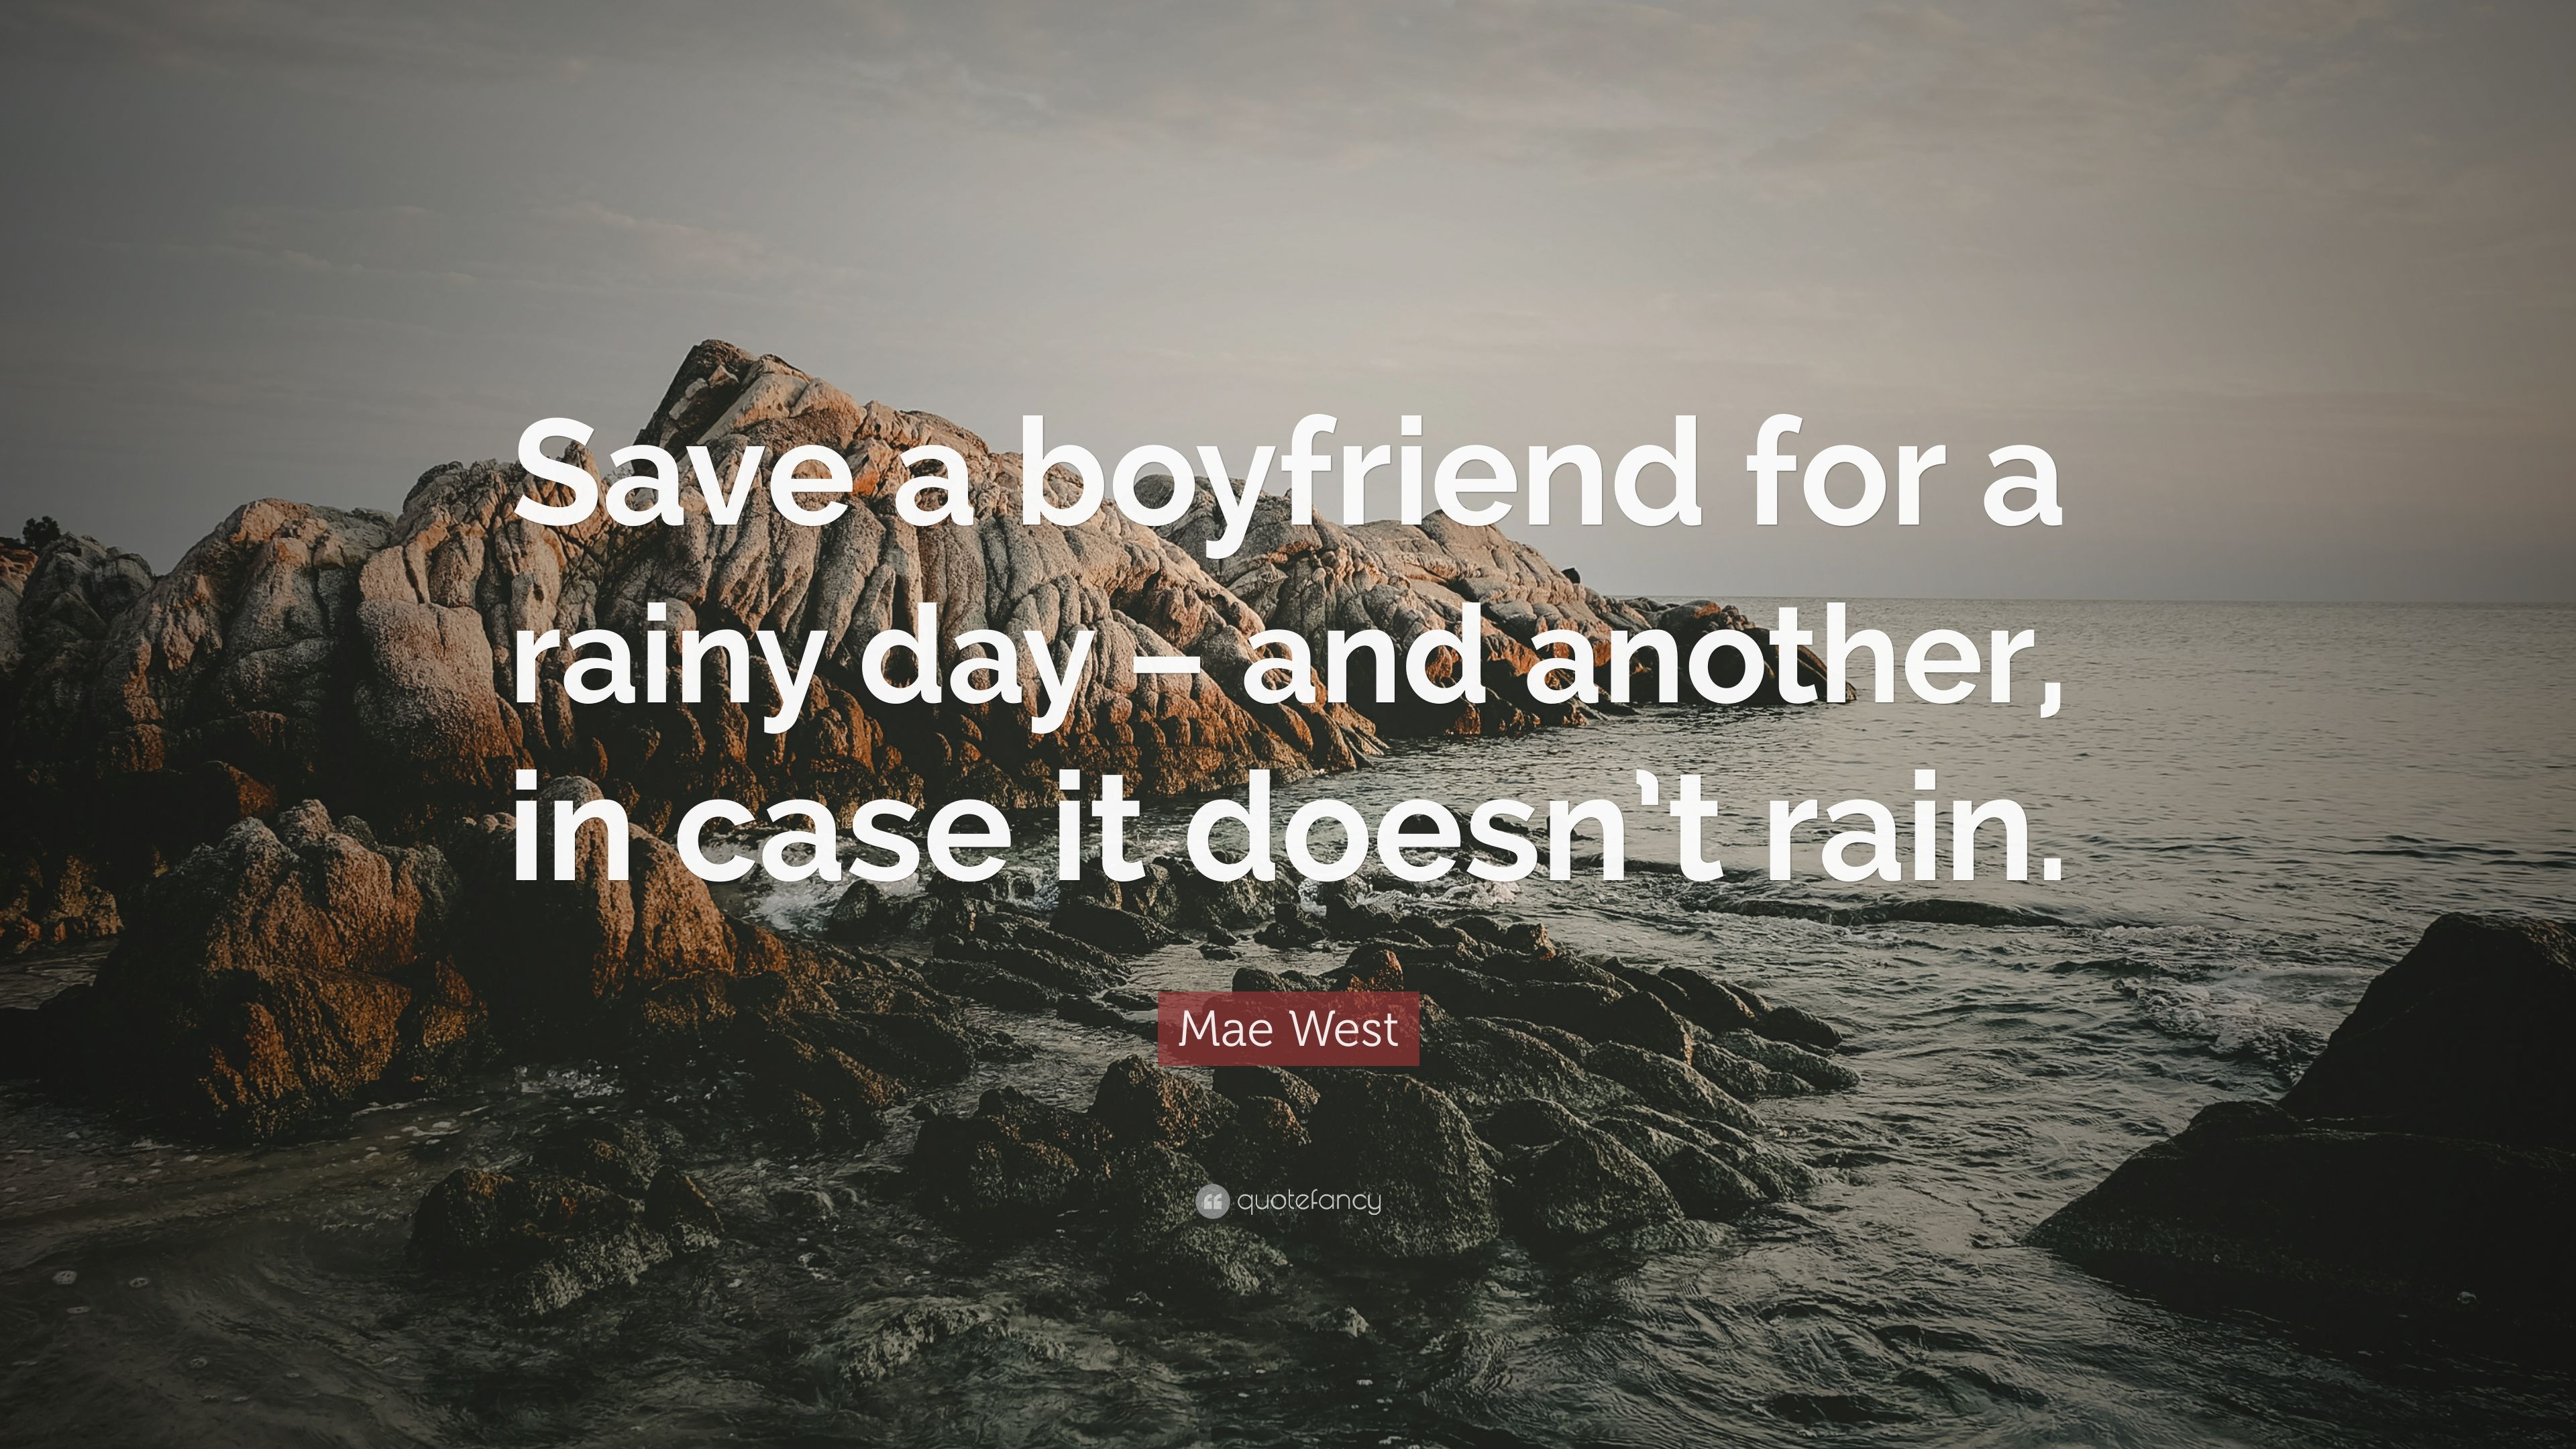 Mae West Quote: U201cSave A Boyfriend For A Rainy Day U2013 And Another,